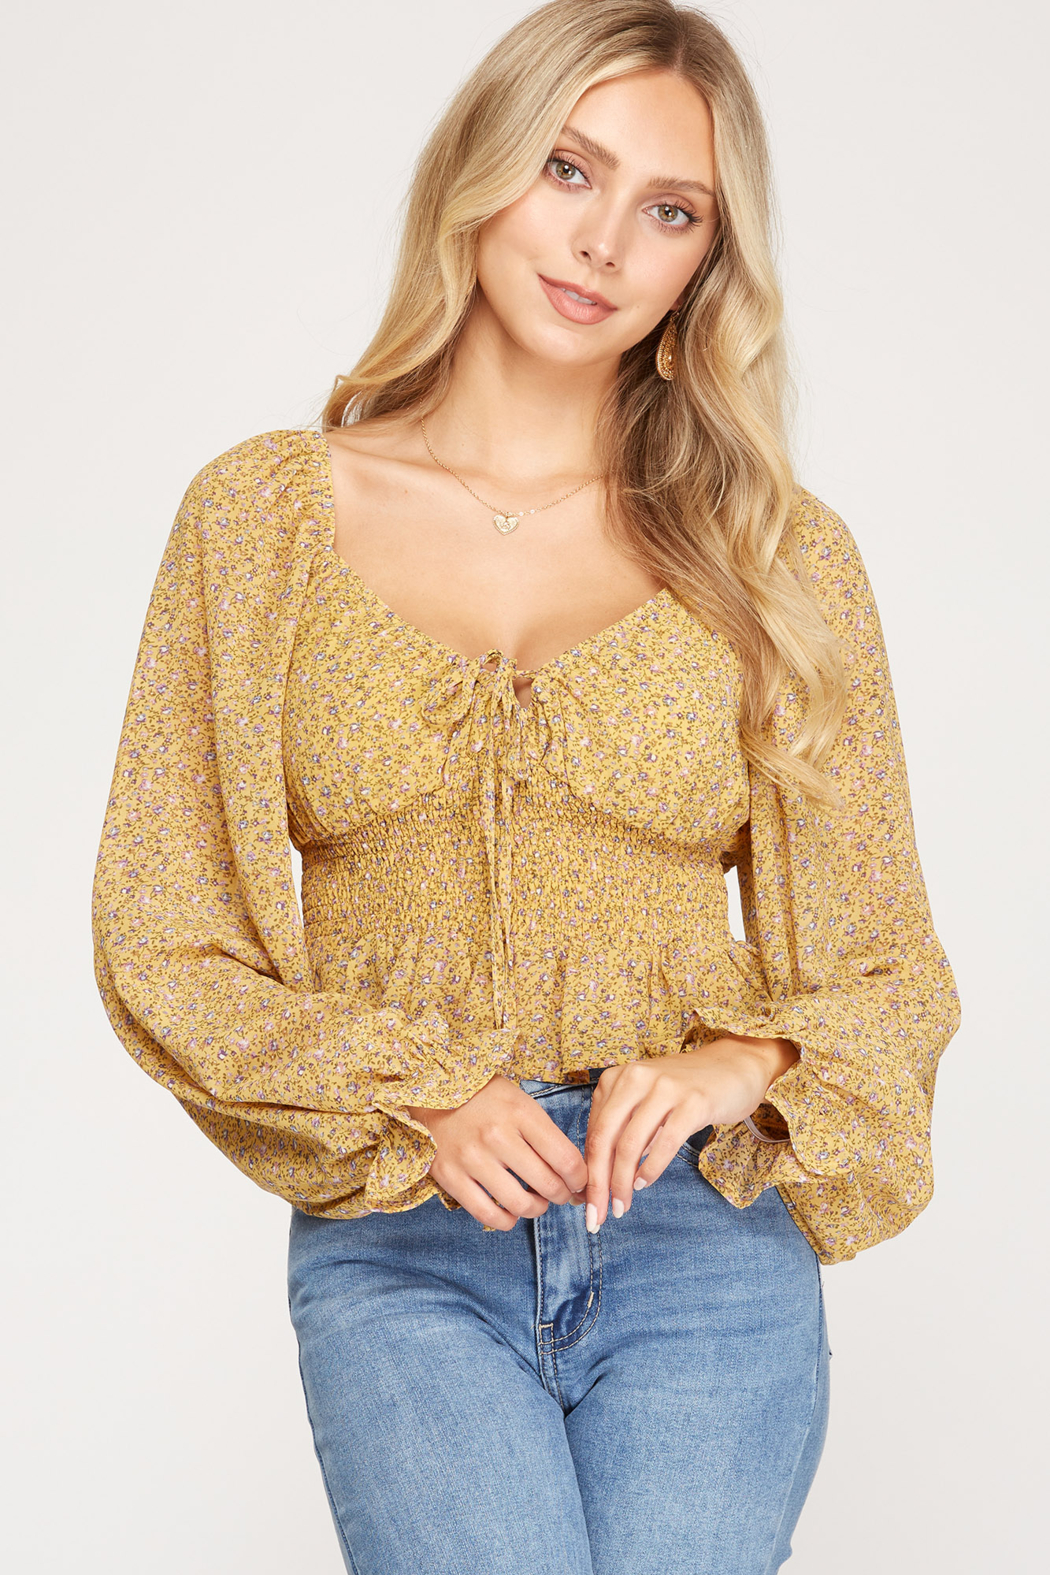 She + Sky Floral Print Smocked Top - Front Cropped Image